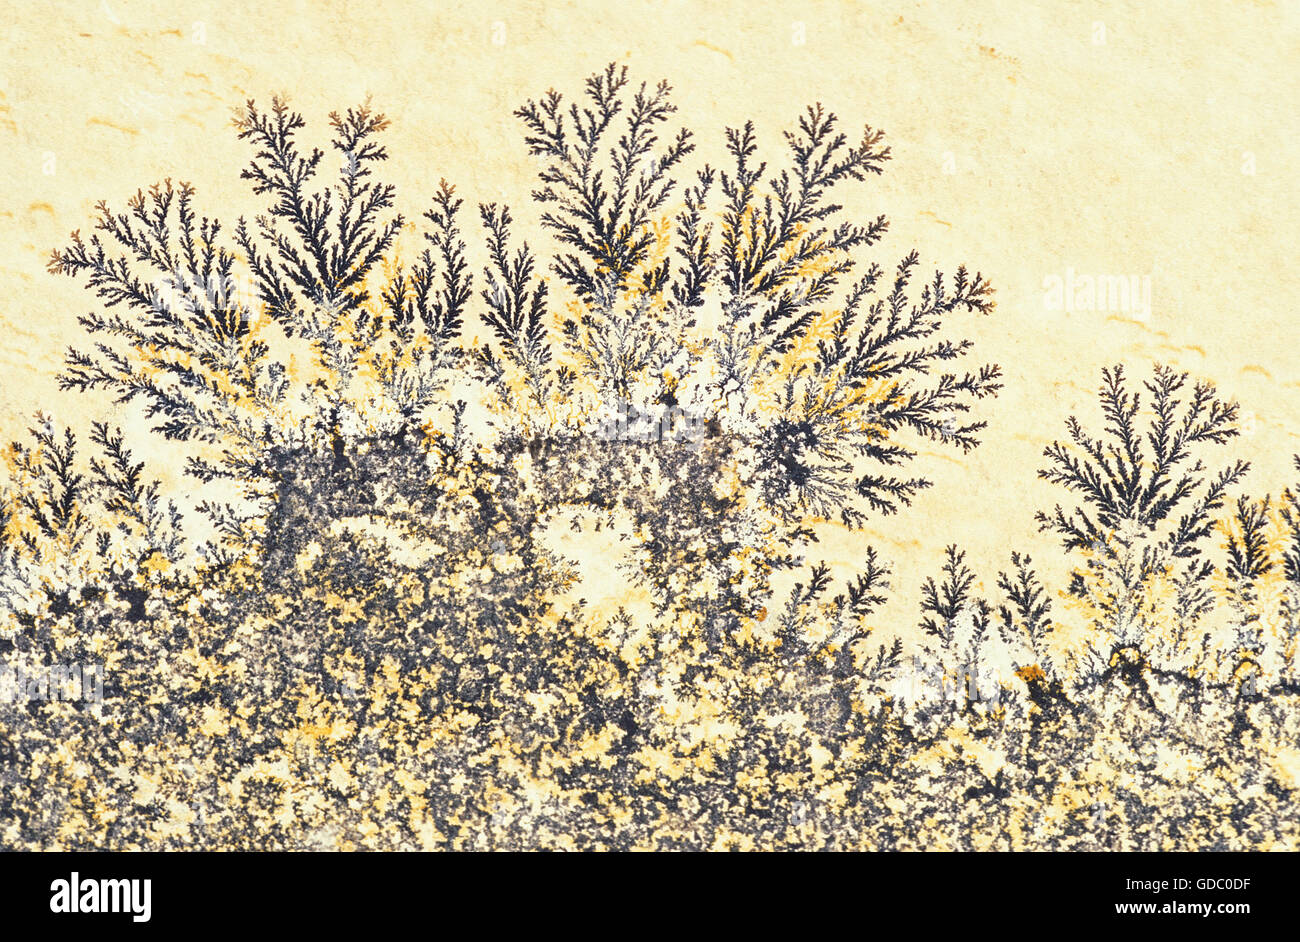 Manganese Dendrites, Branching Features containing Manganese Oxides found on Rock Surfaces - Stock Image